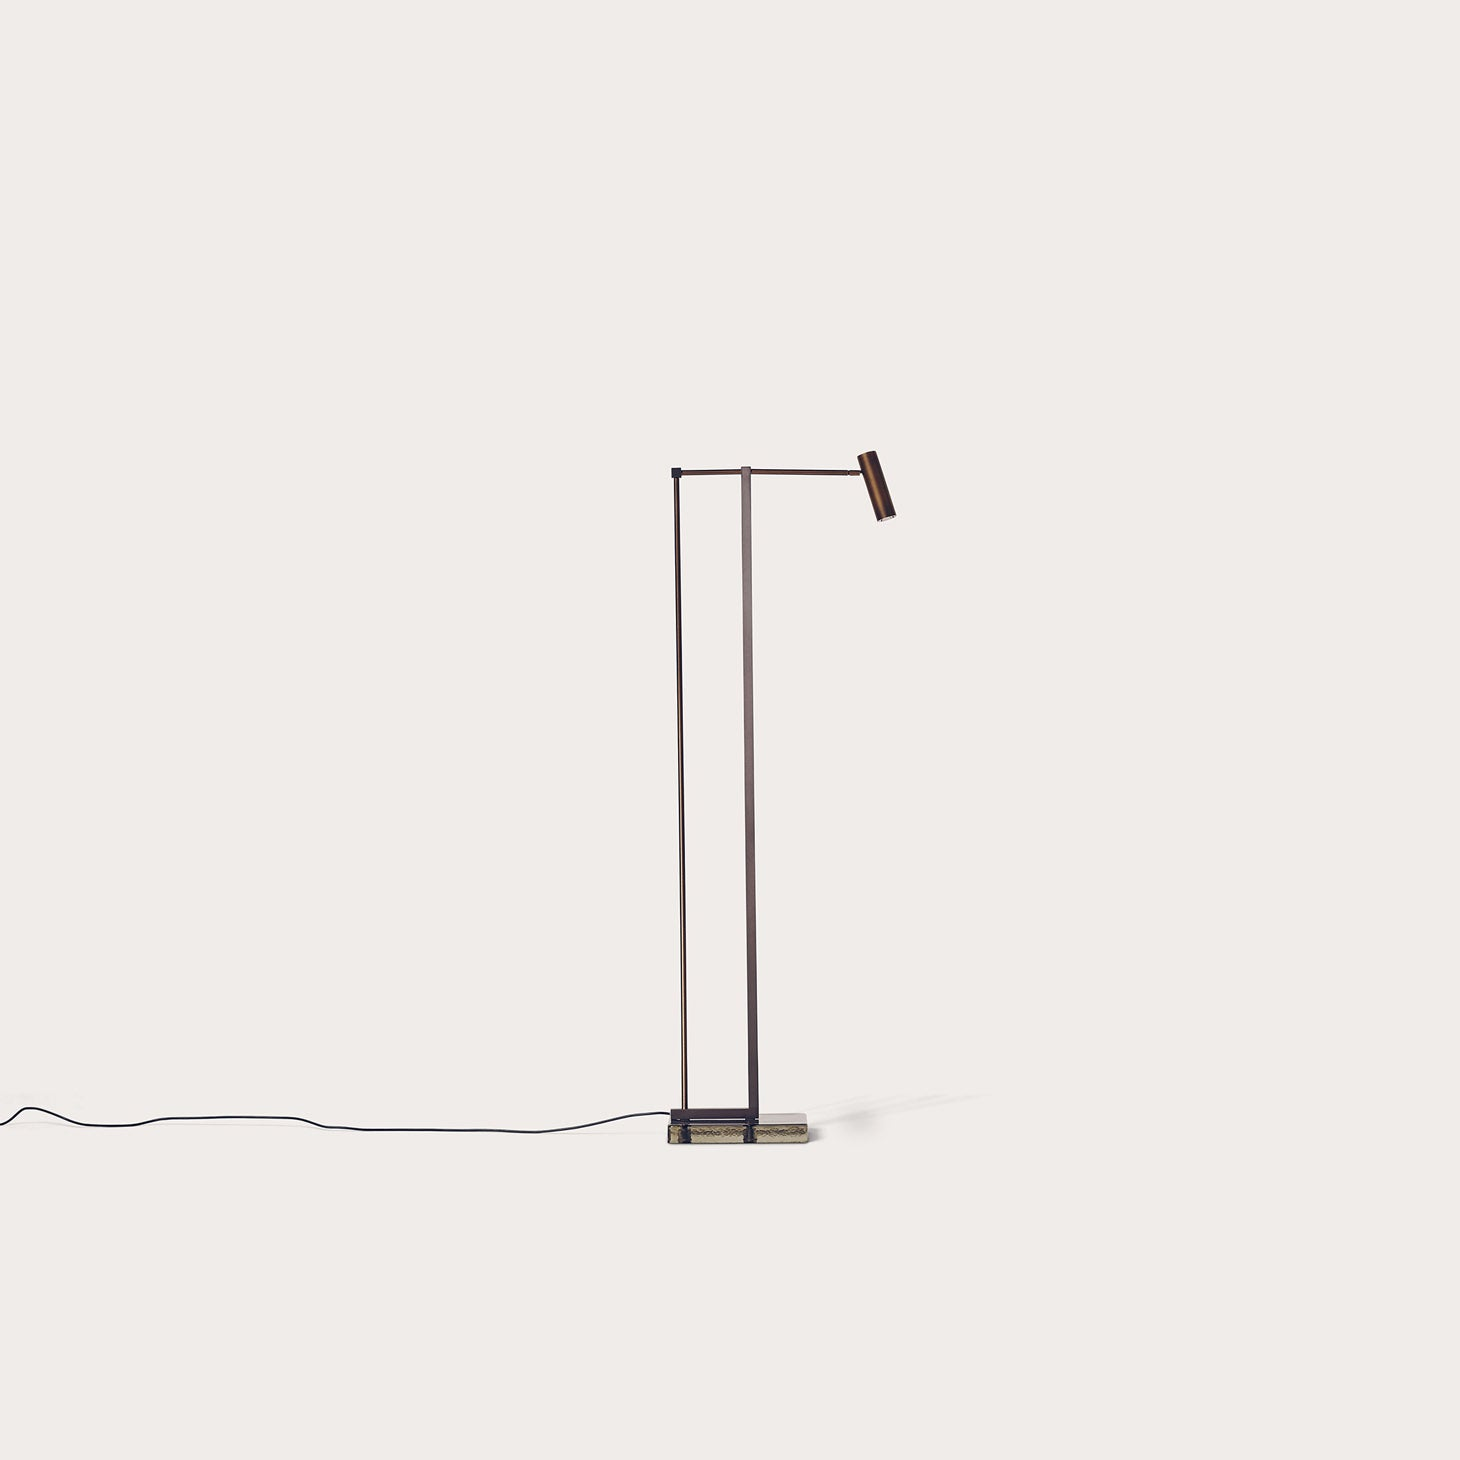 NAAS Floor Lamp Lighting Bruno Moinard Designer Furniture Sku: 773-160-10003